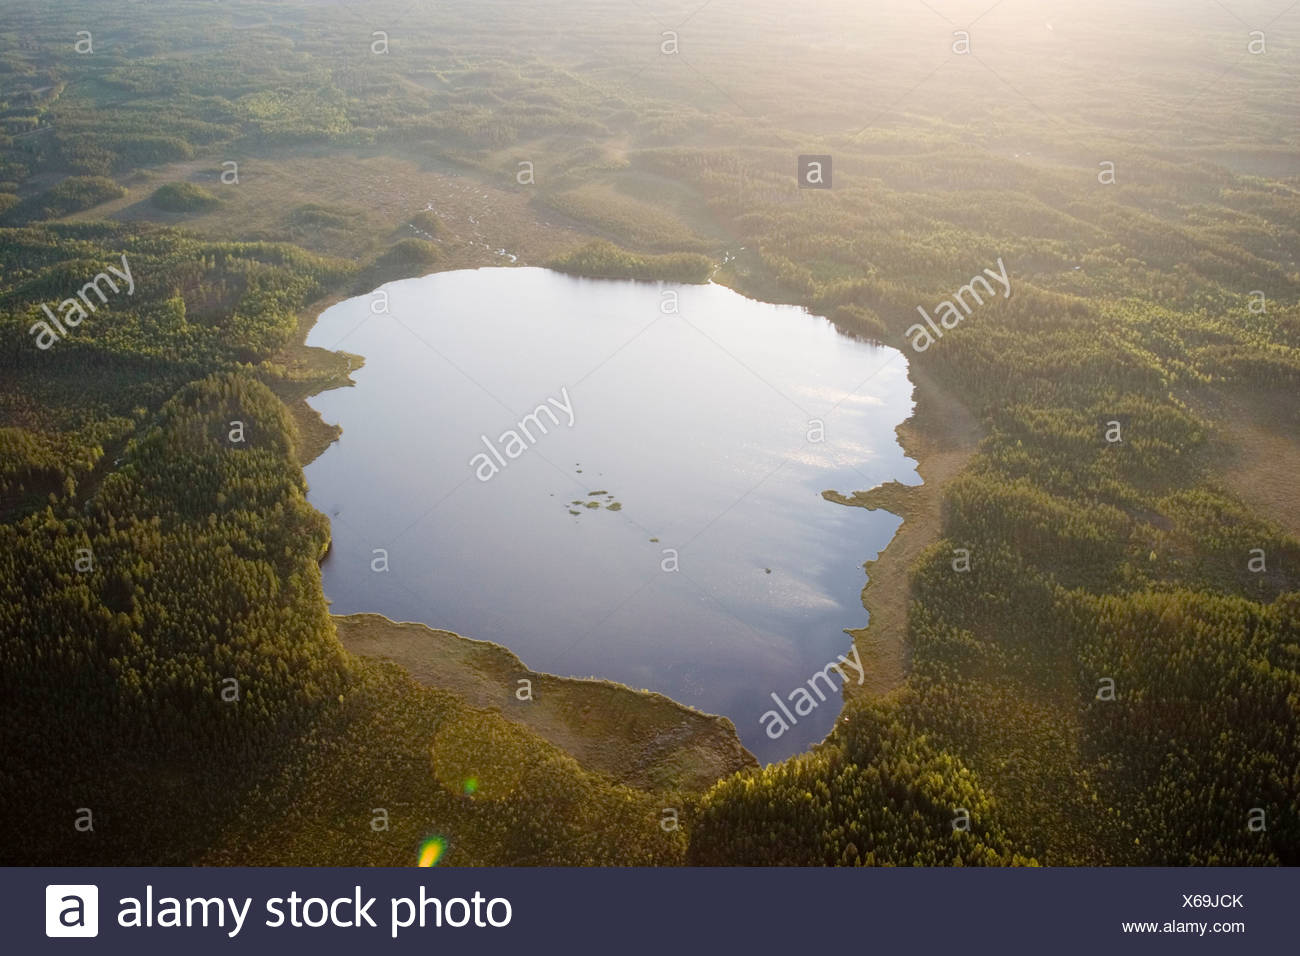 A lake in a forest, aerial view, Sweden. - Stock Image